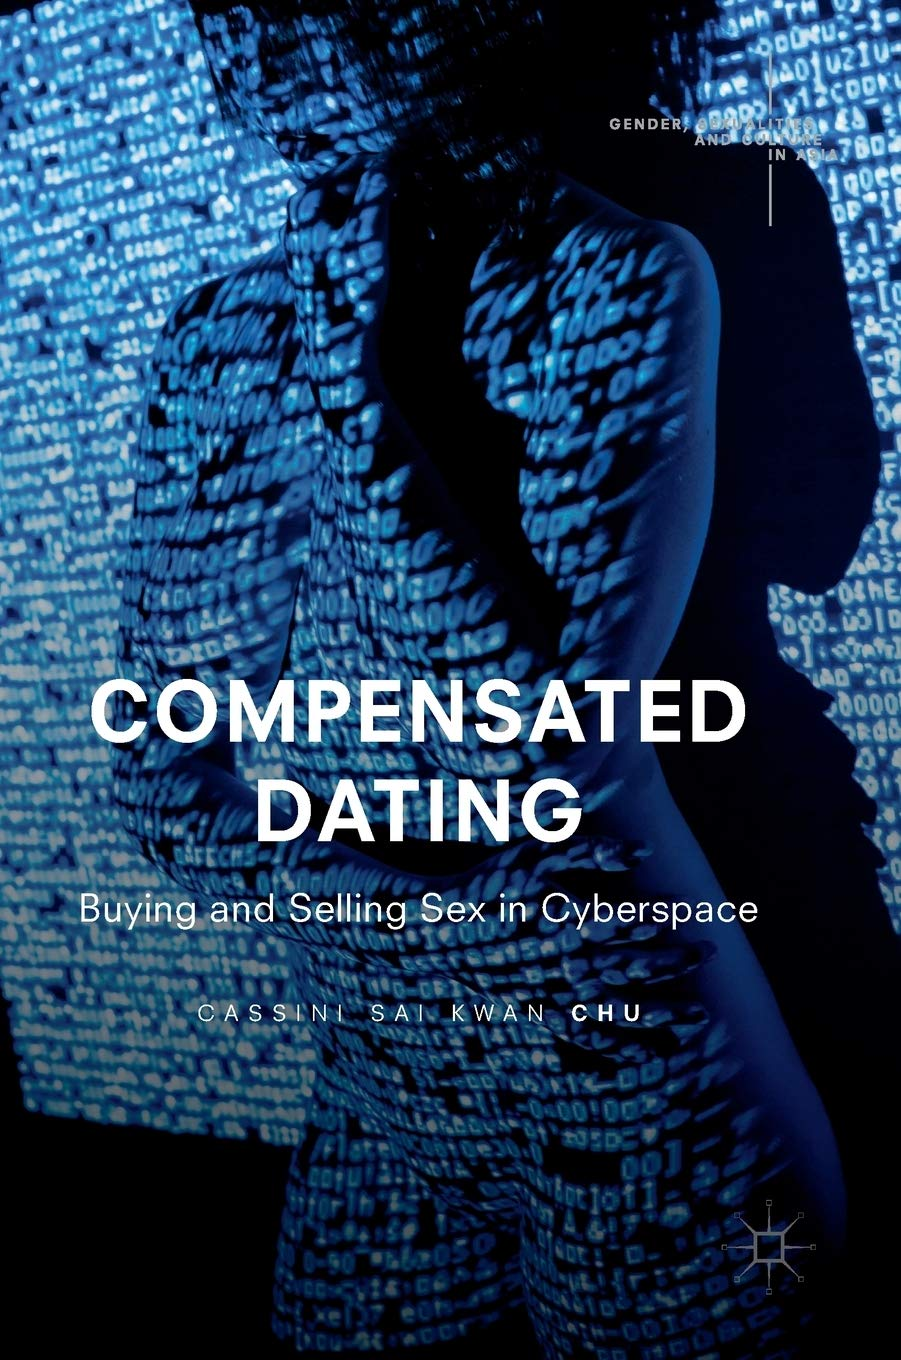 Compensated dating in america the rules of dating my daughter